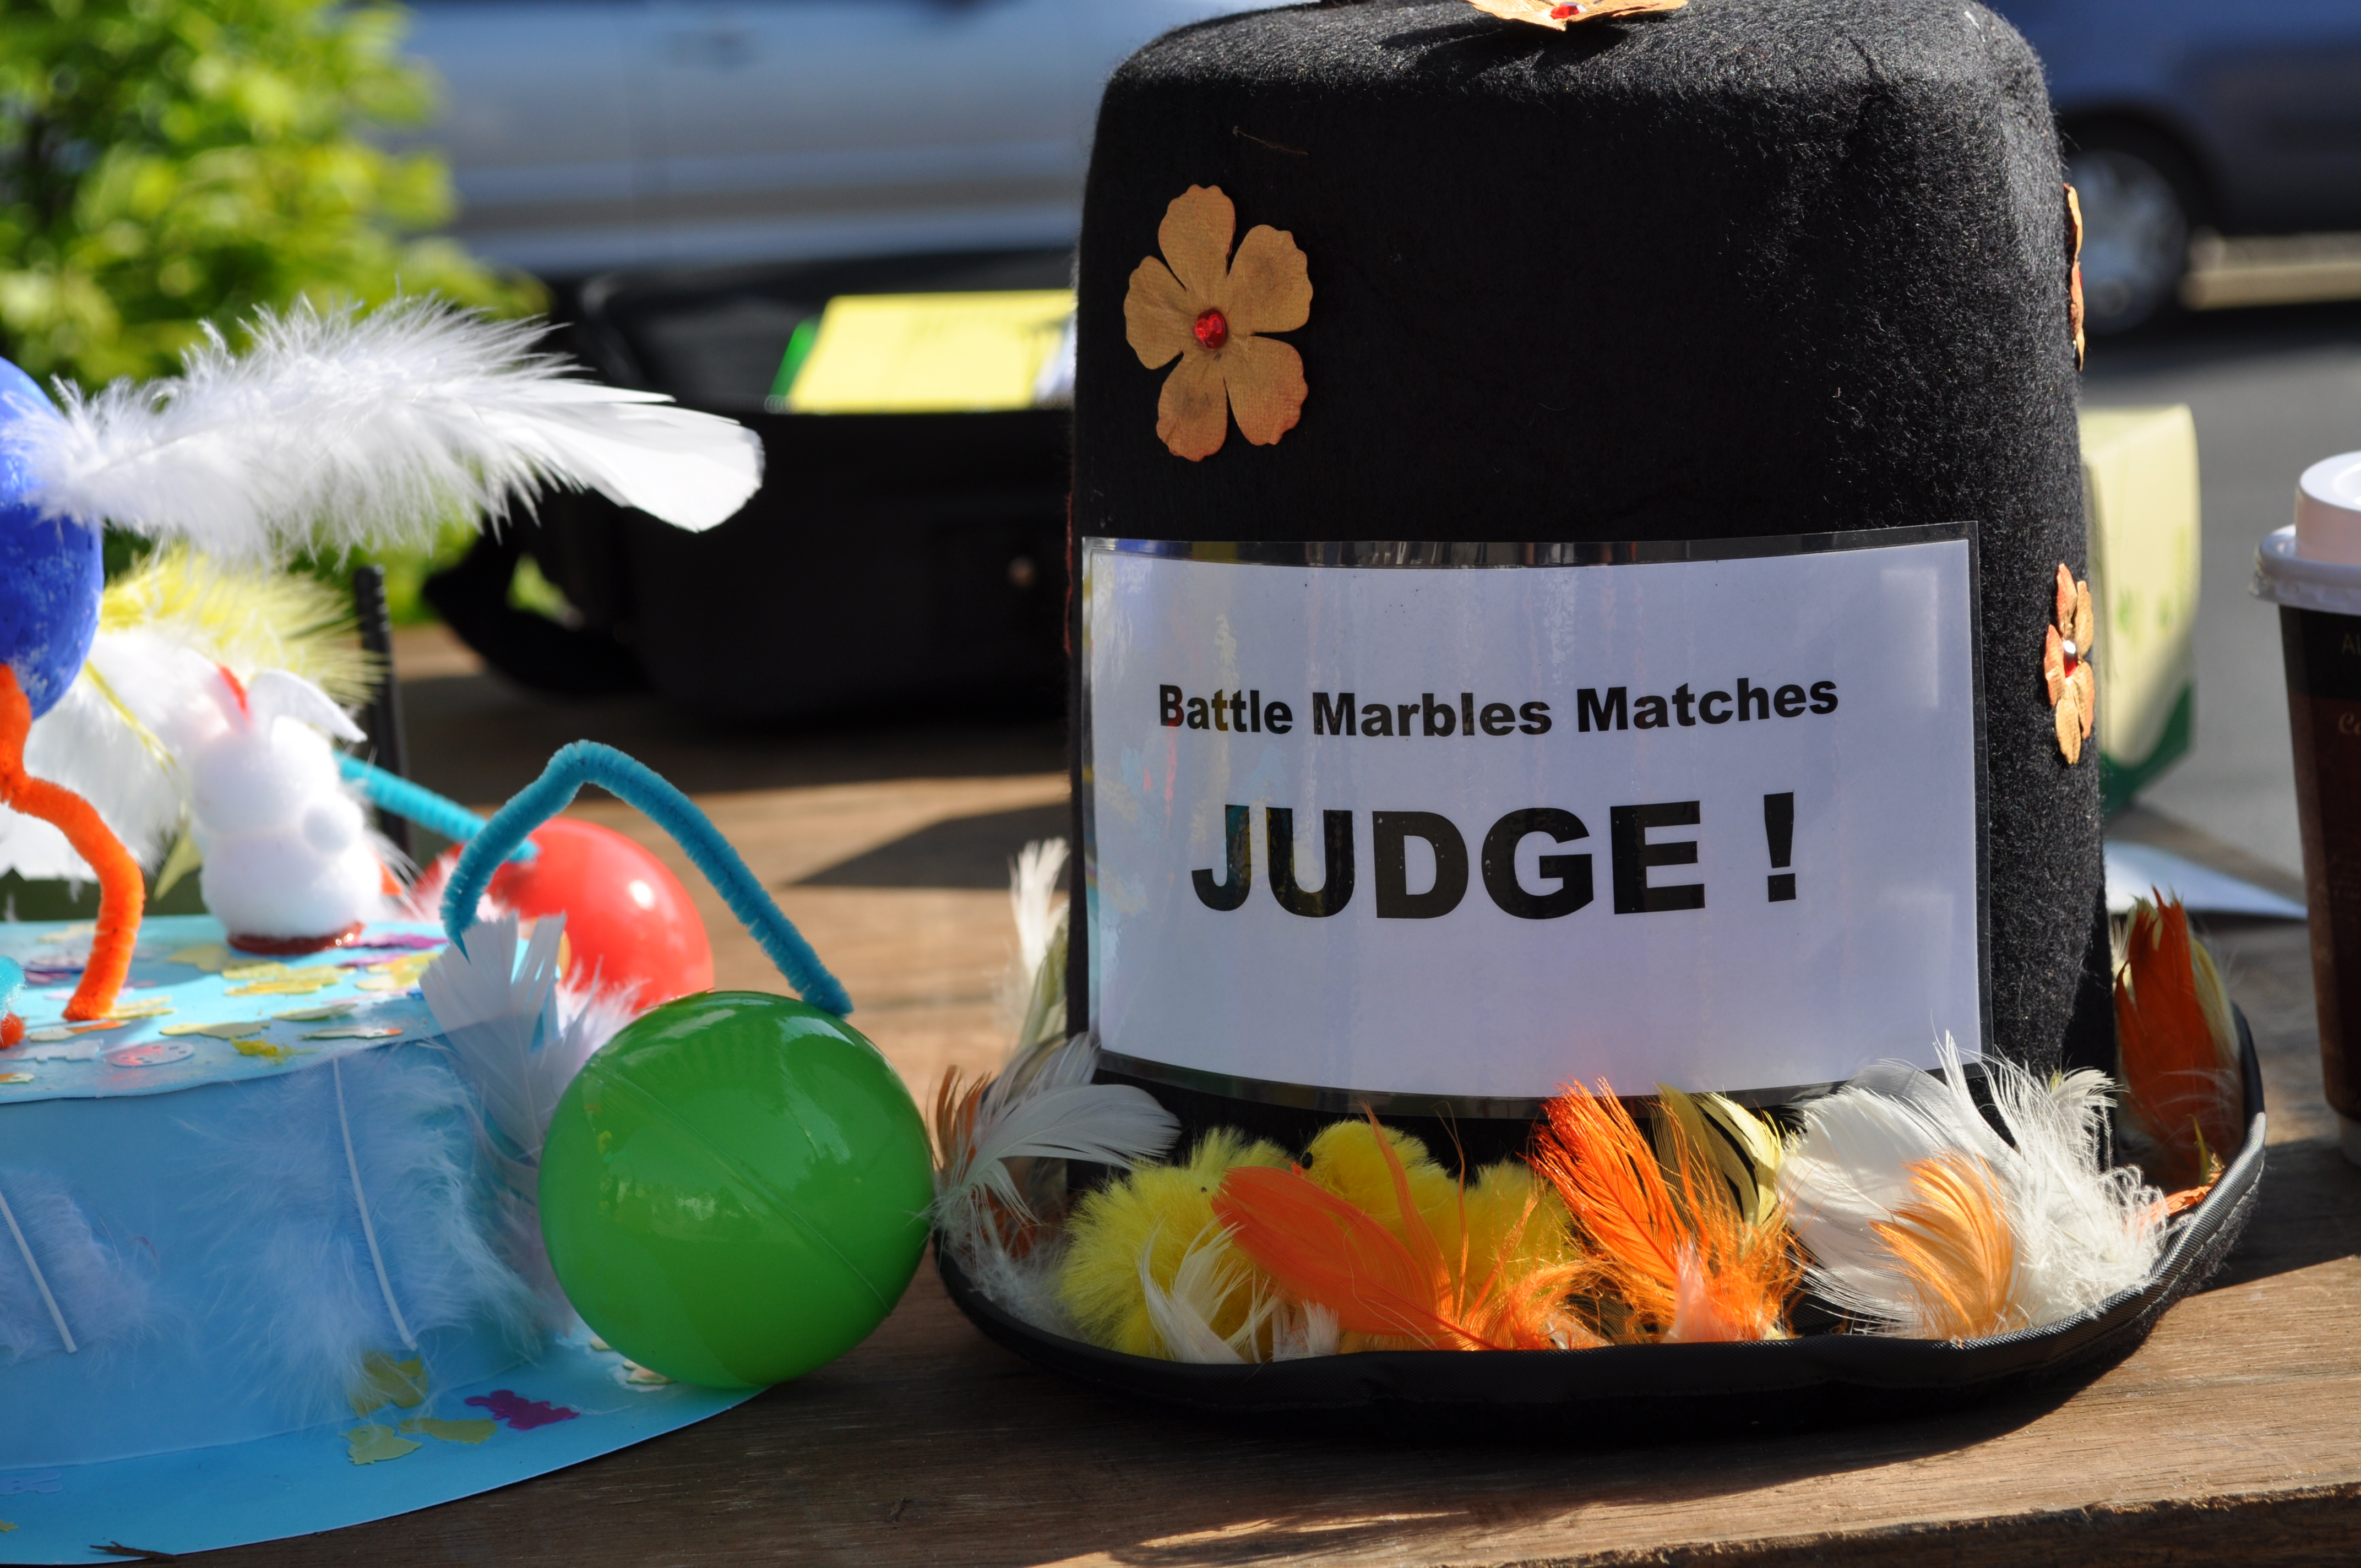 Judge's Hat at Battle Marbles